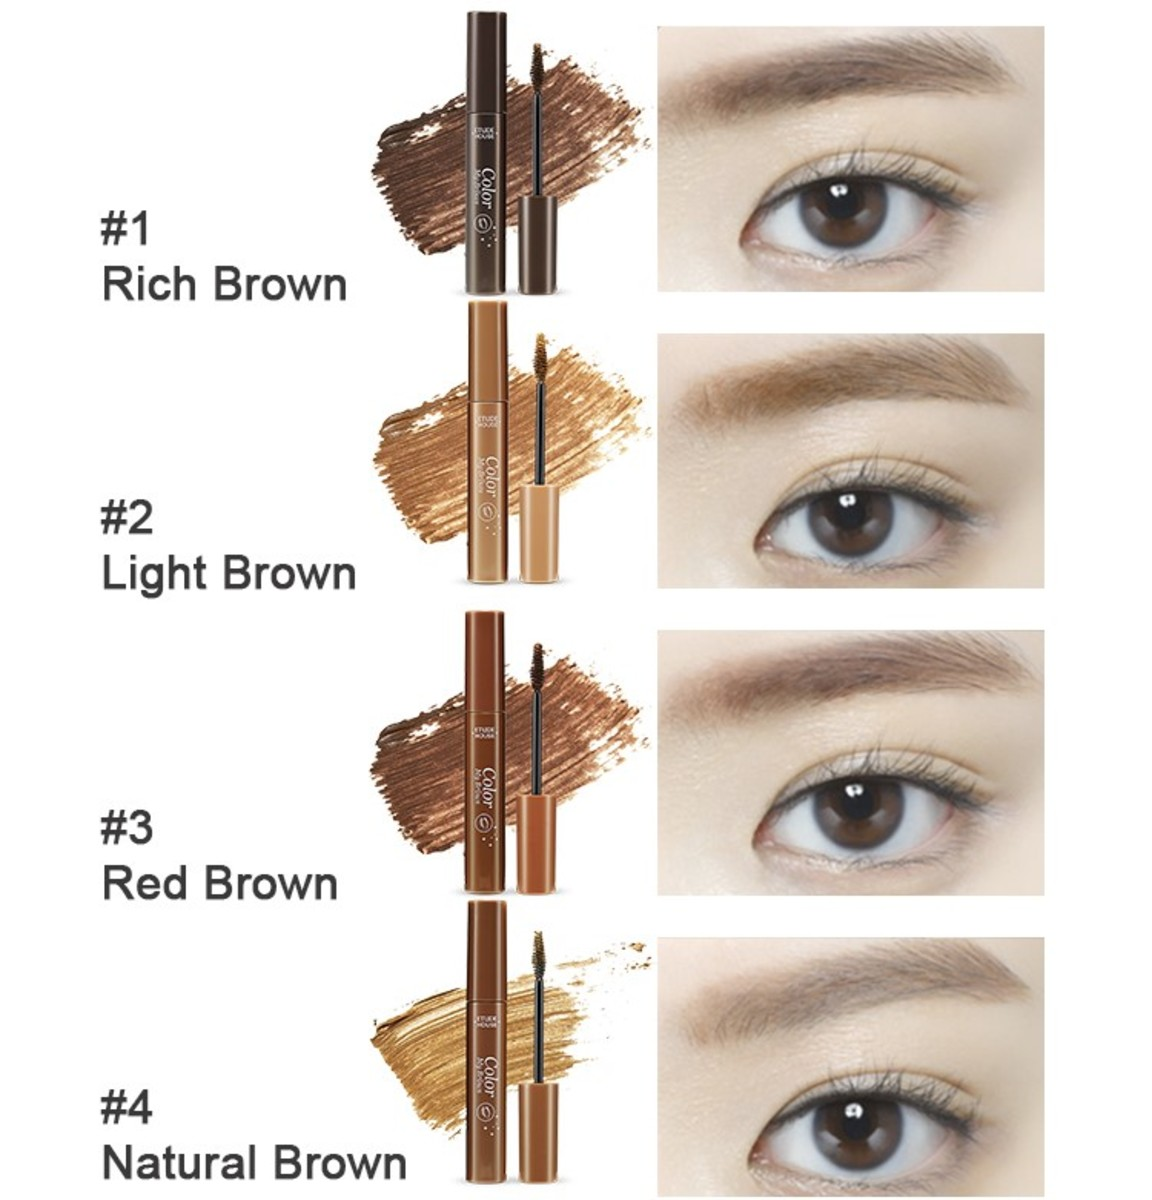 730919c0c7c Etude House | Color My Brows #04 4.5g | HKTVmall Online Shopping